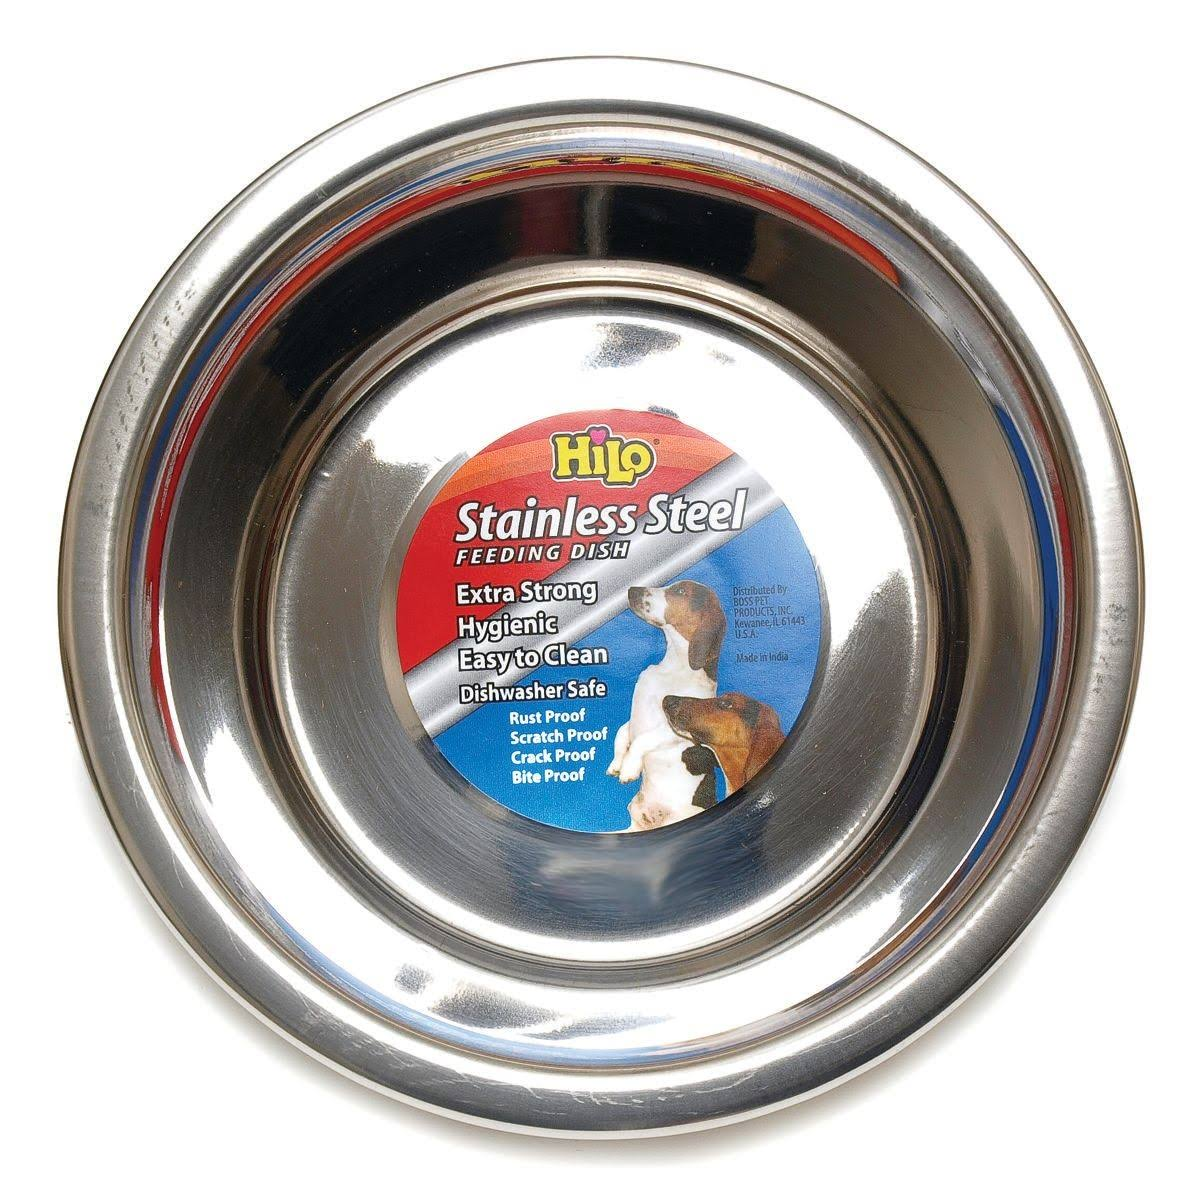 Hilo Stainless Steel Pet Dish - Medium, 2qt